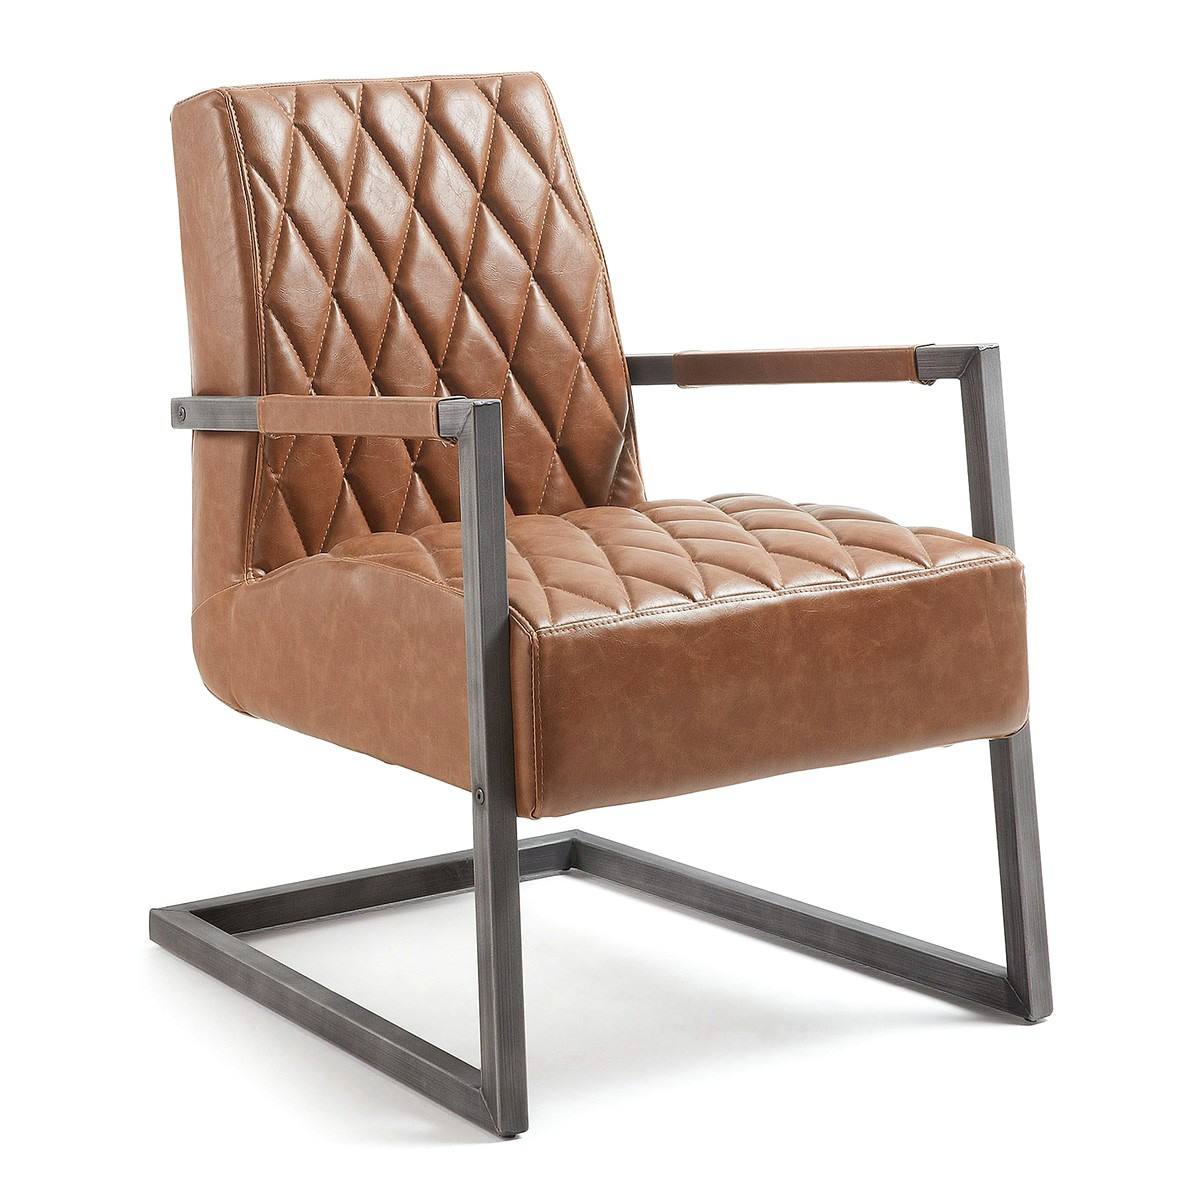 Dillon PU Leather Lounge Armchair, Tan